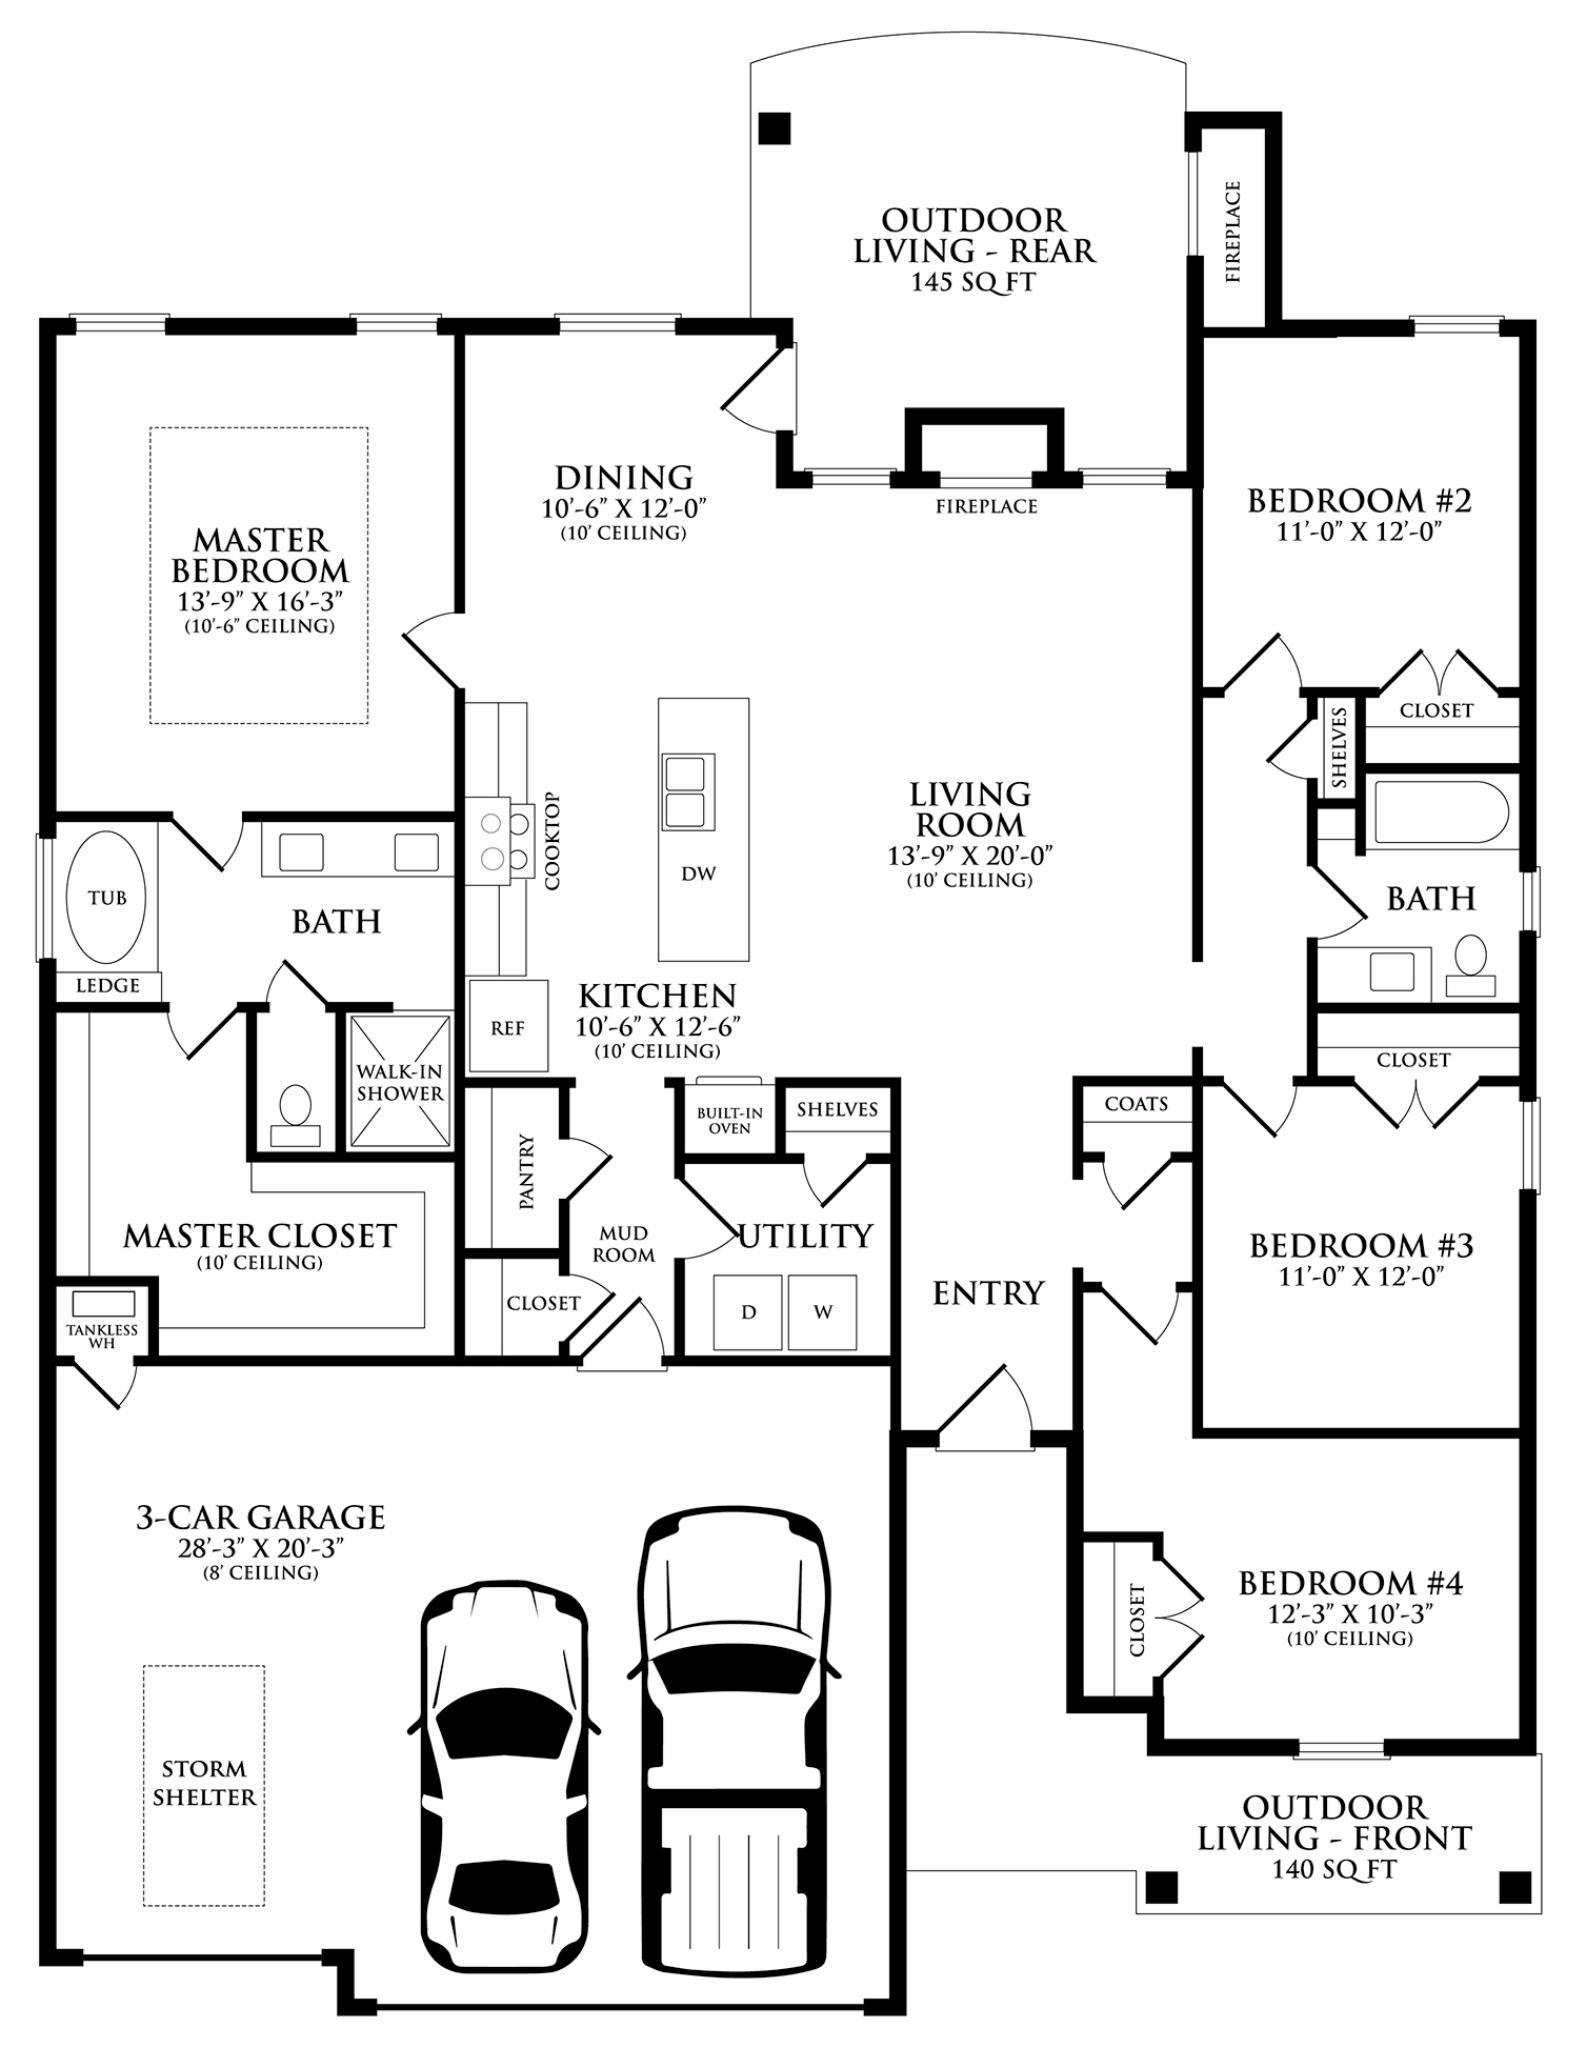 Blue Spruce Floor Plan Homes By Taber Floor Plans New Homes For Sale Entry Closet